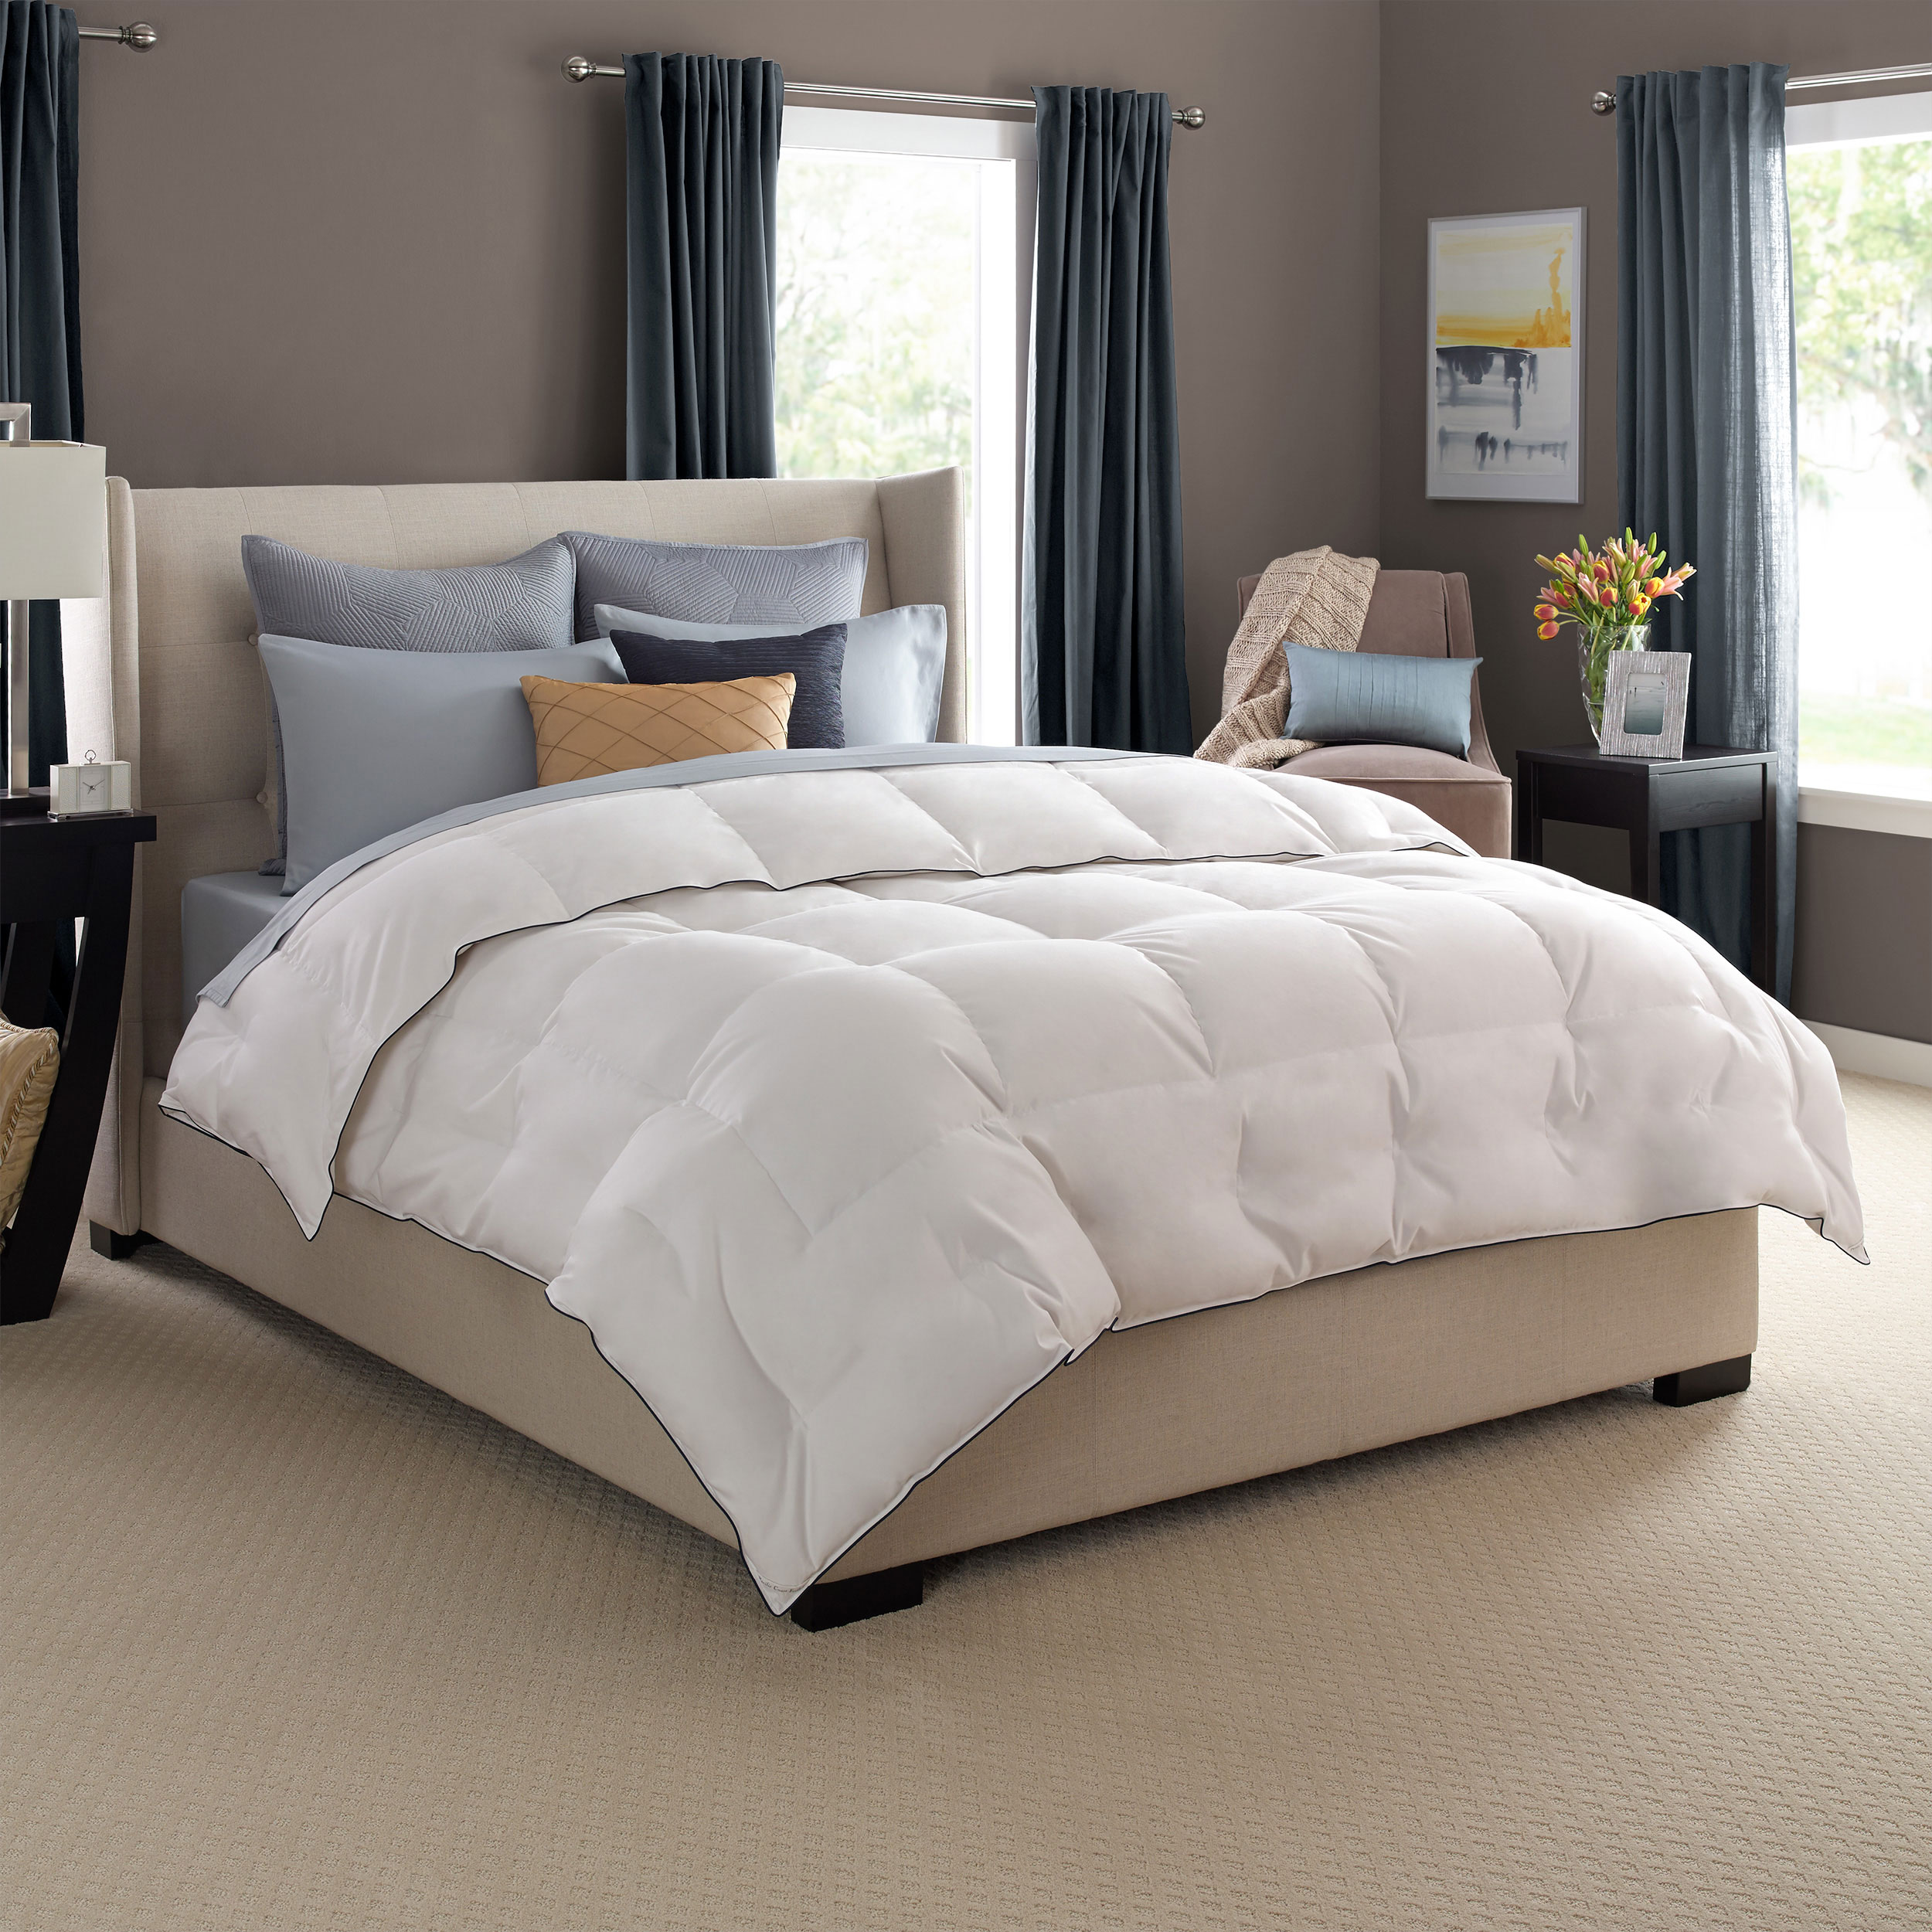 Pacific Coast Luxury White Goose Down Comforter 680 Thread Count 600 Fill Power White Goose Down - King